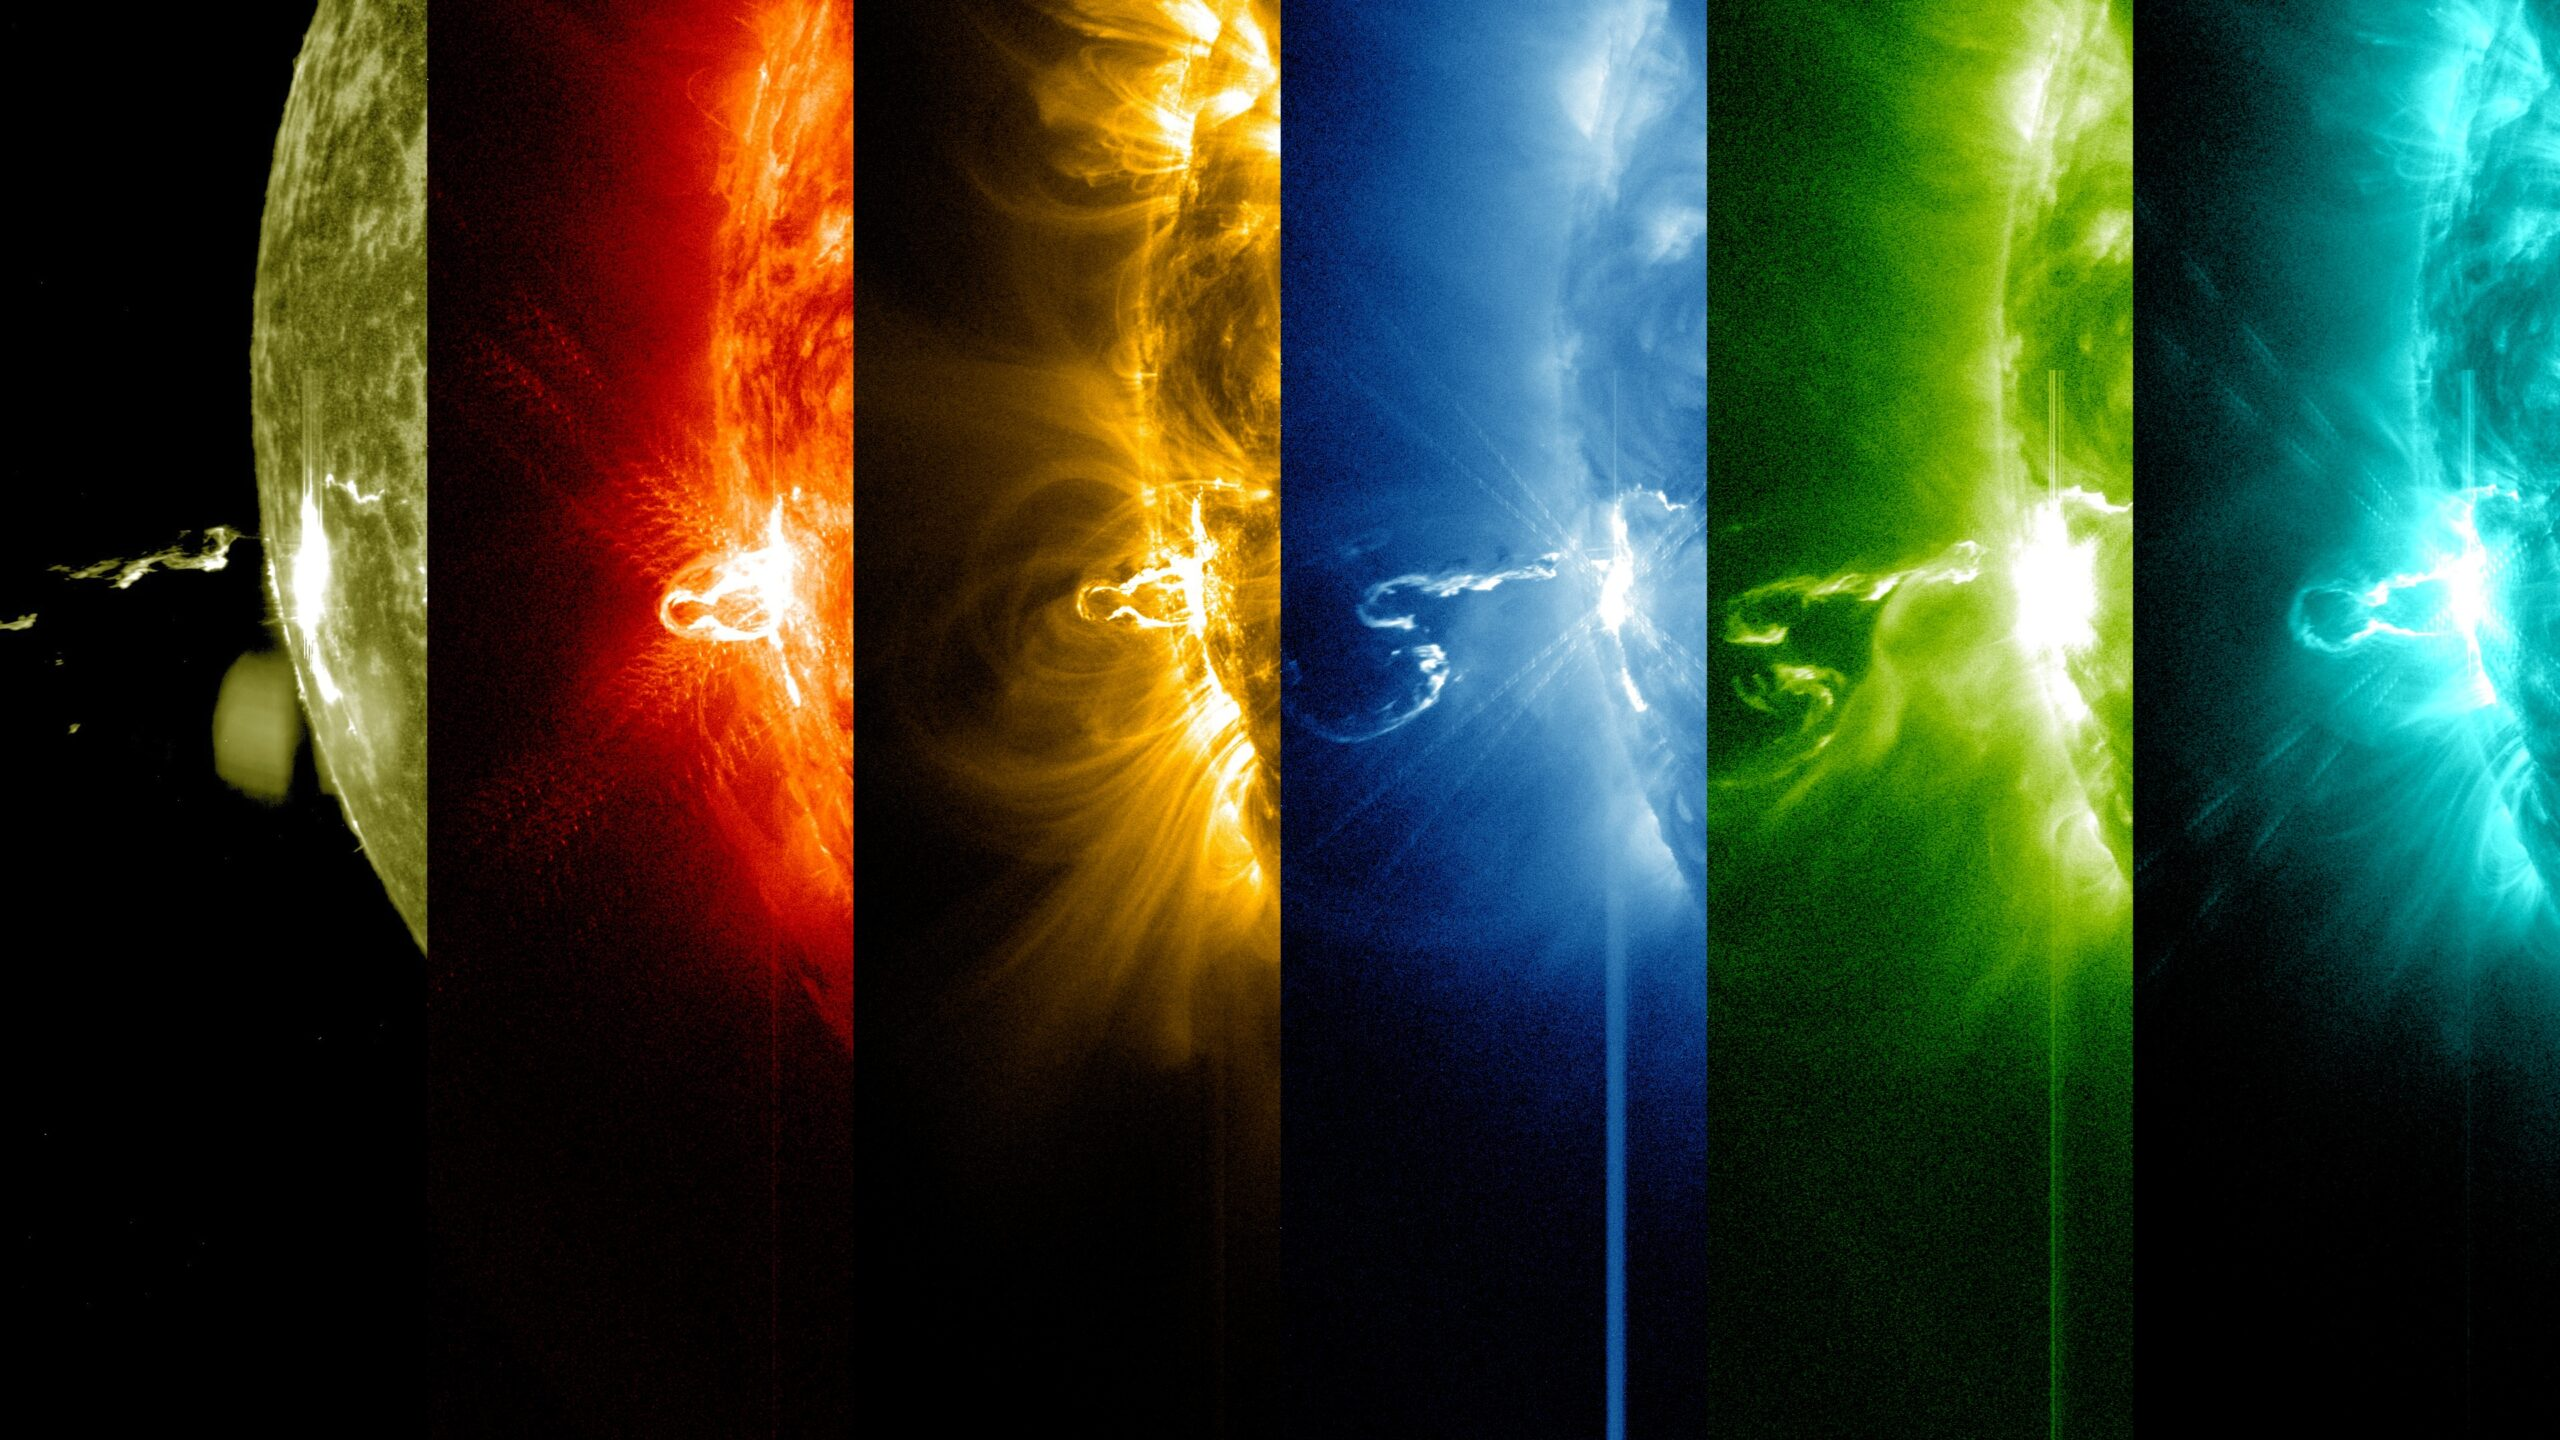 colored solar flare wo writing